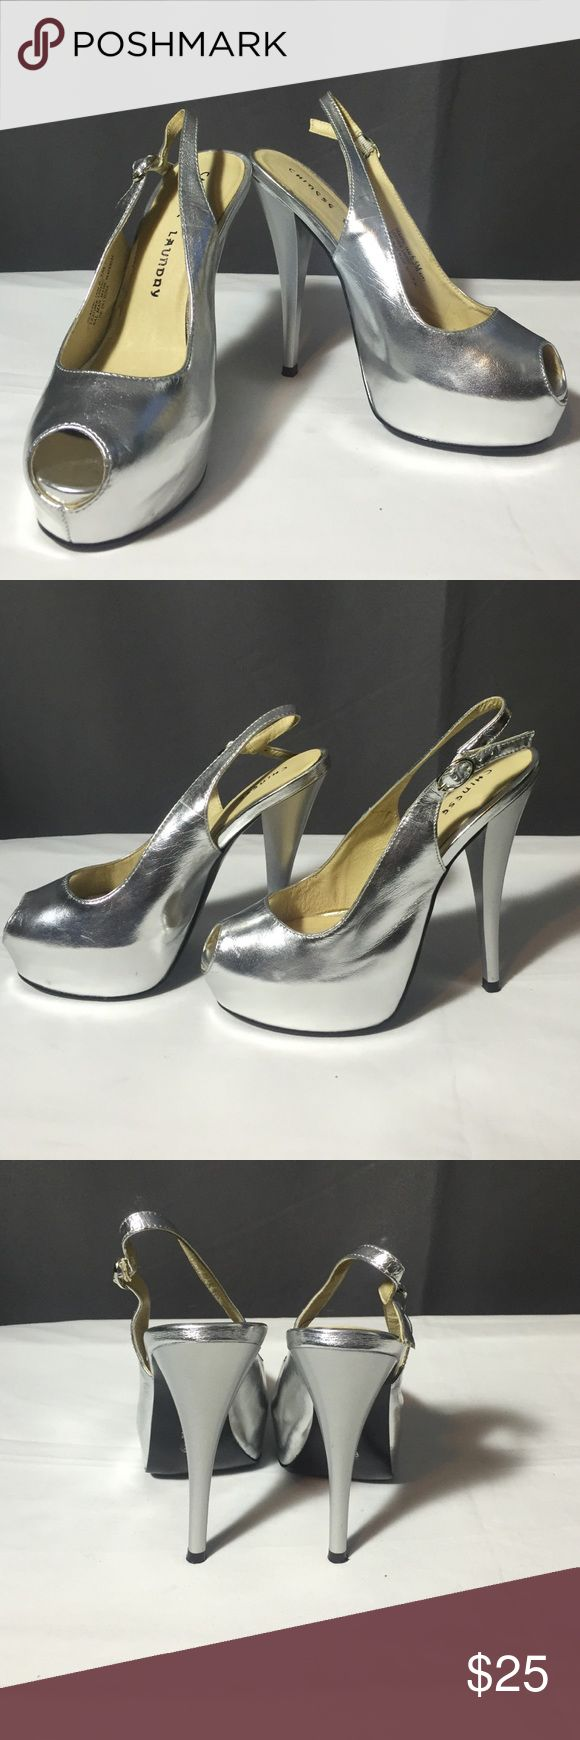 """Chinese Laundry Heels Platform 6.5 Silver Chinese Laundry Heels """"Traffic Jam"""" . Glazed Silver patent leather upper with a small peep toe and adjustable heel strap. A 1 inch hidden platform and skyscraping 5 inches heel. Chinese Laundry Shoes Heels"""